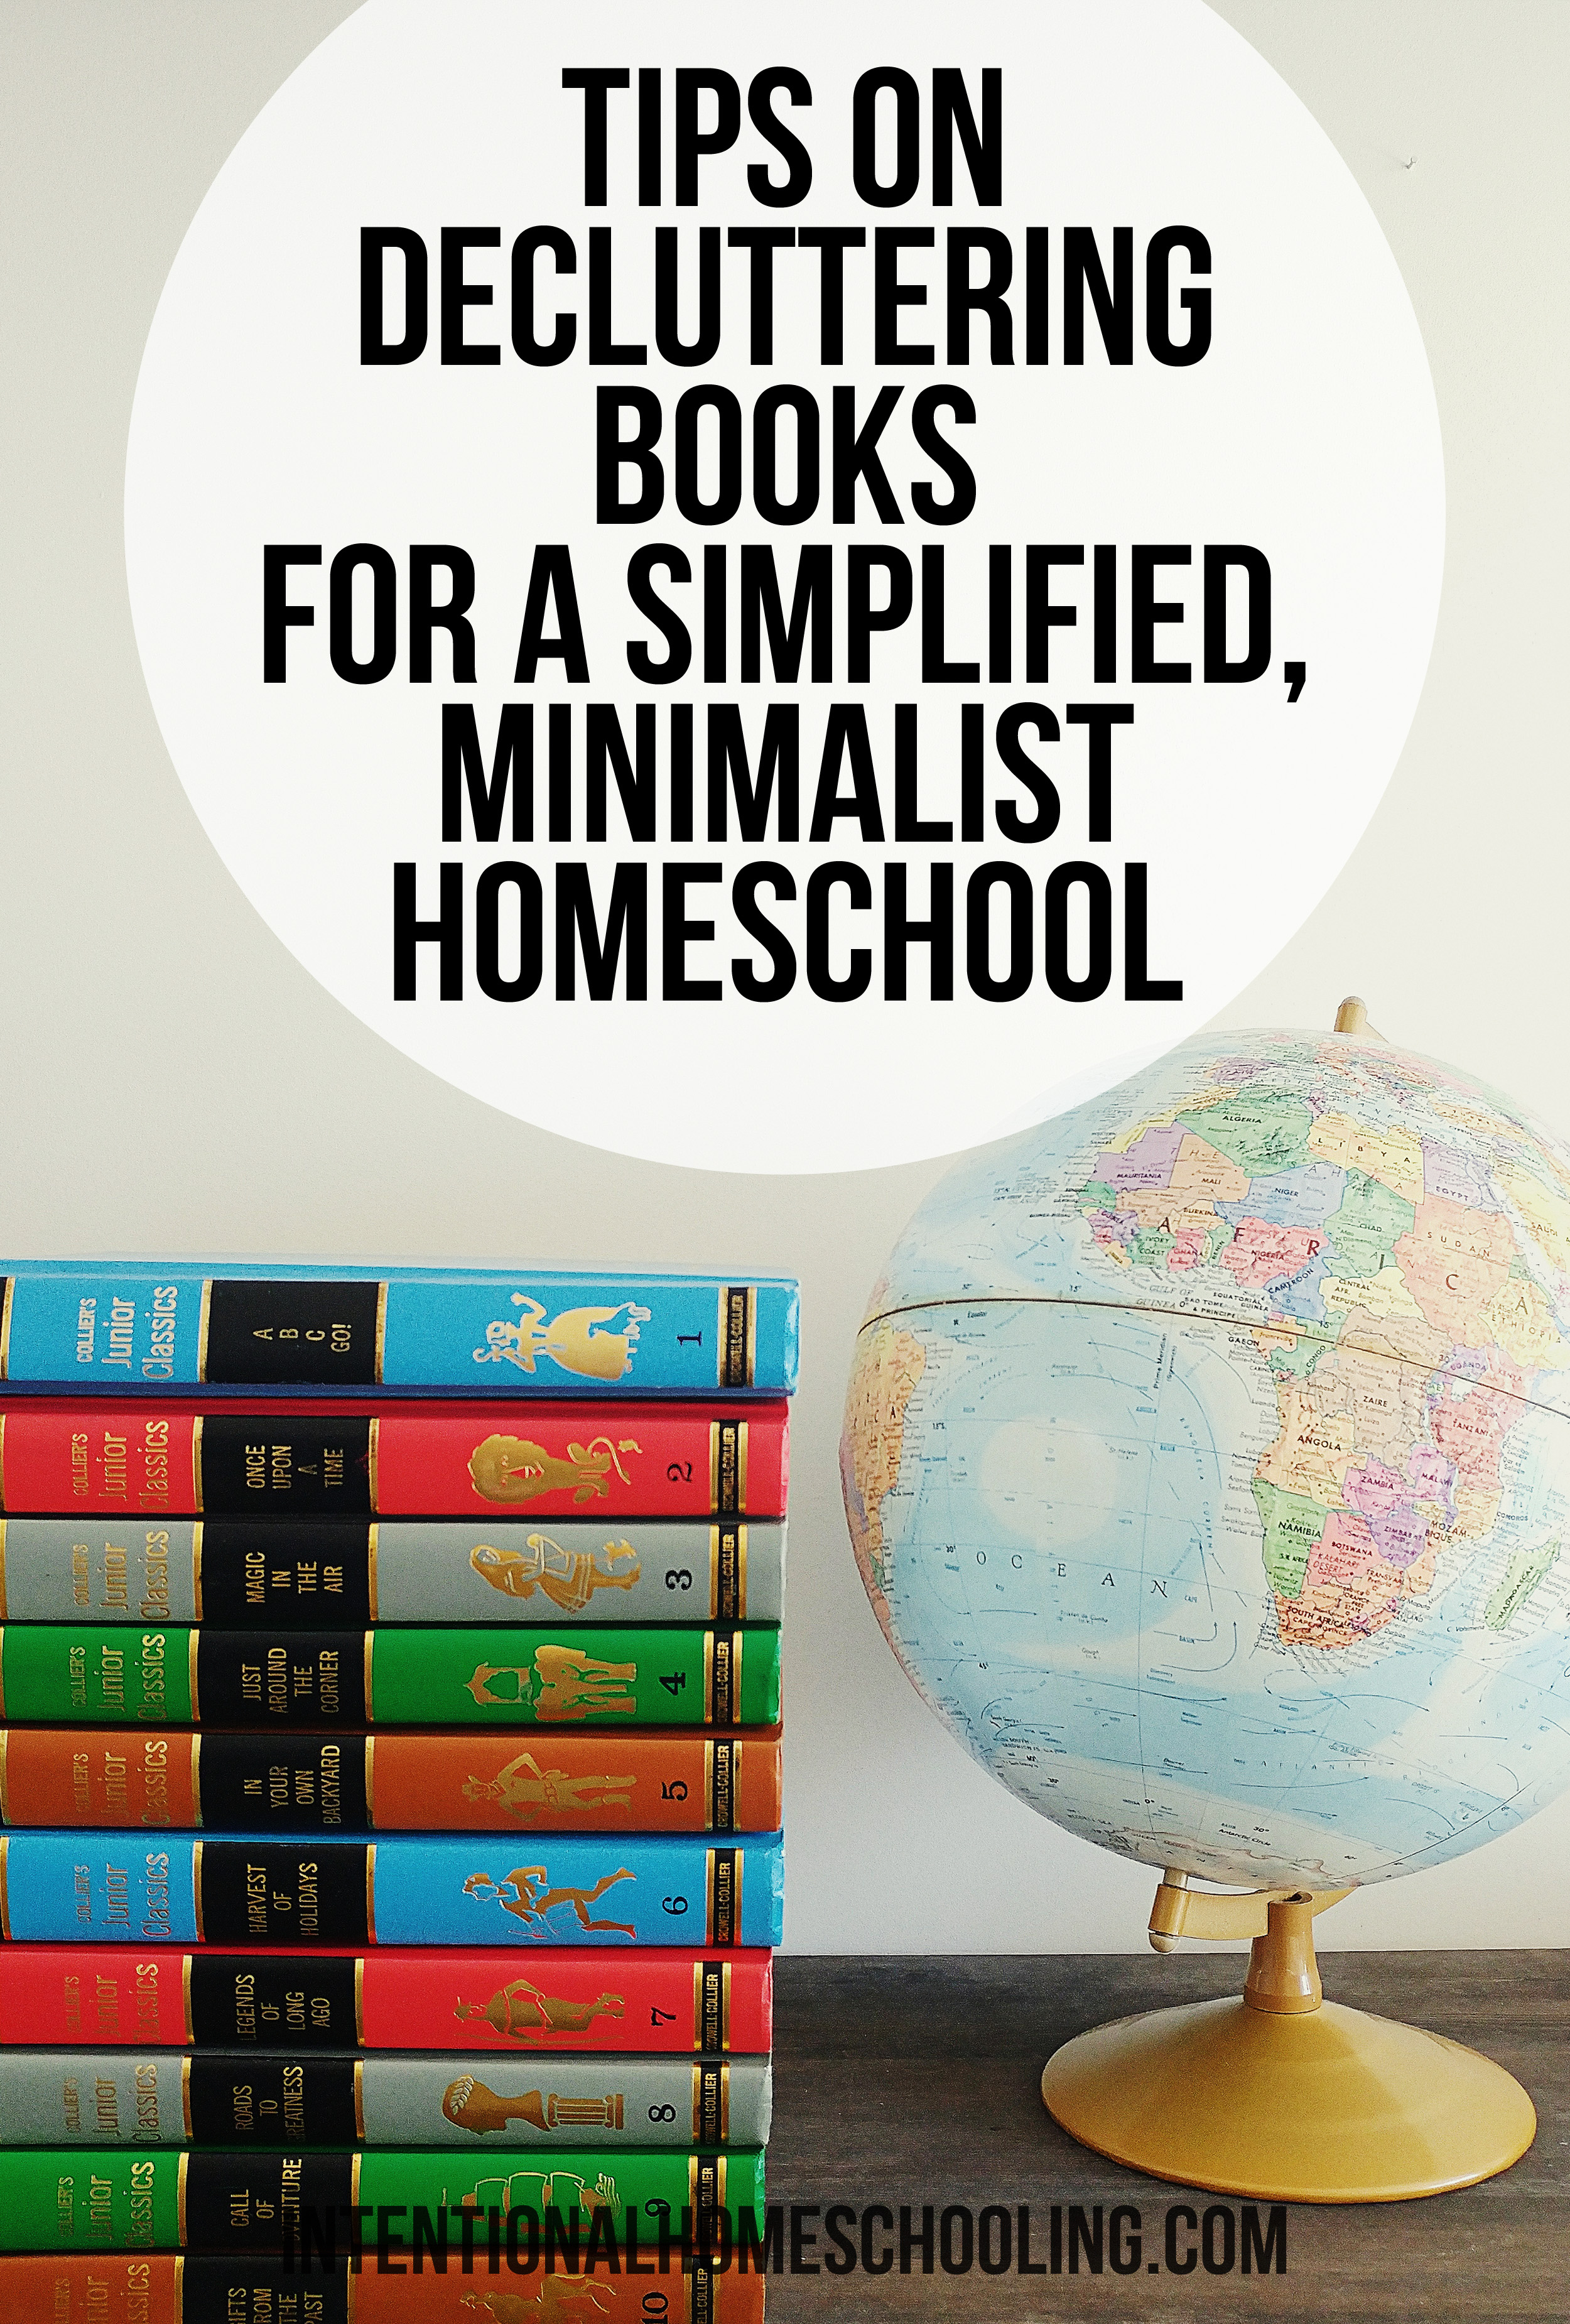 Tip on Decluttering Books for a more Simplified, Minimalist Homeschool